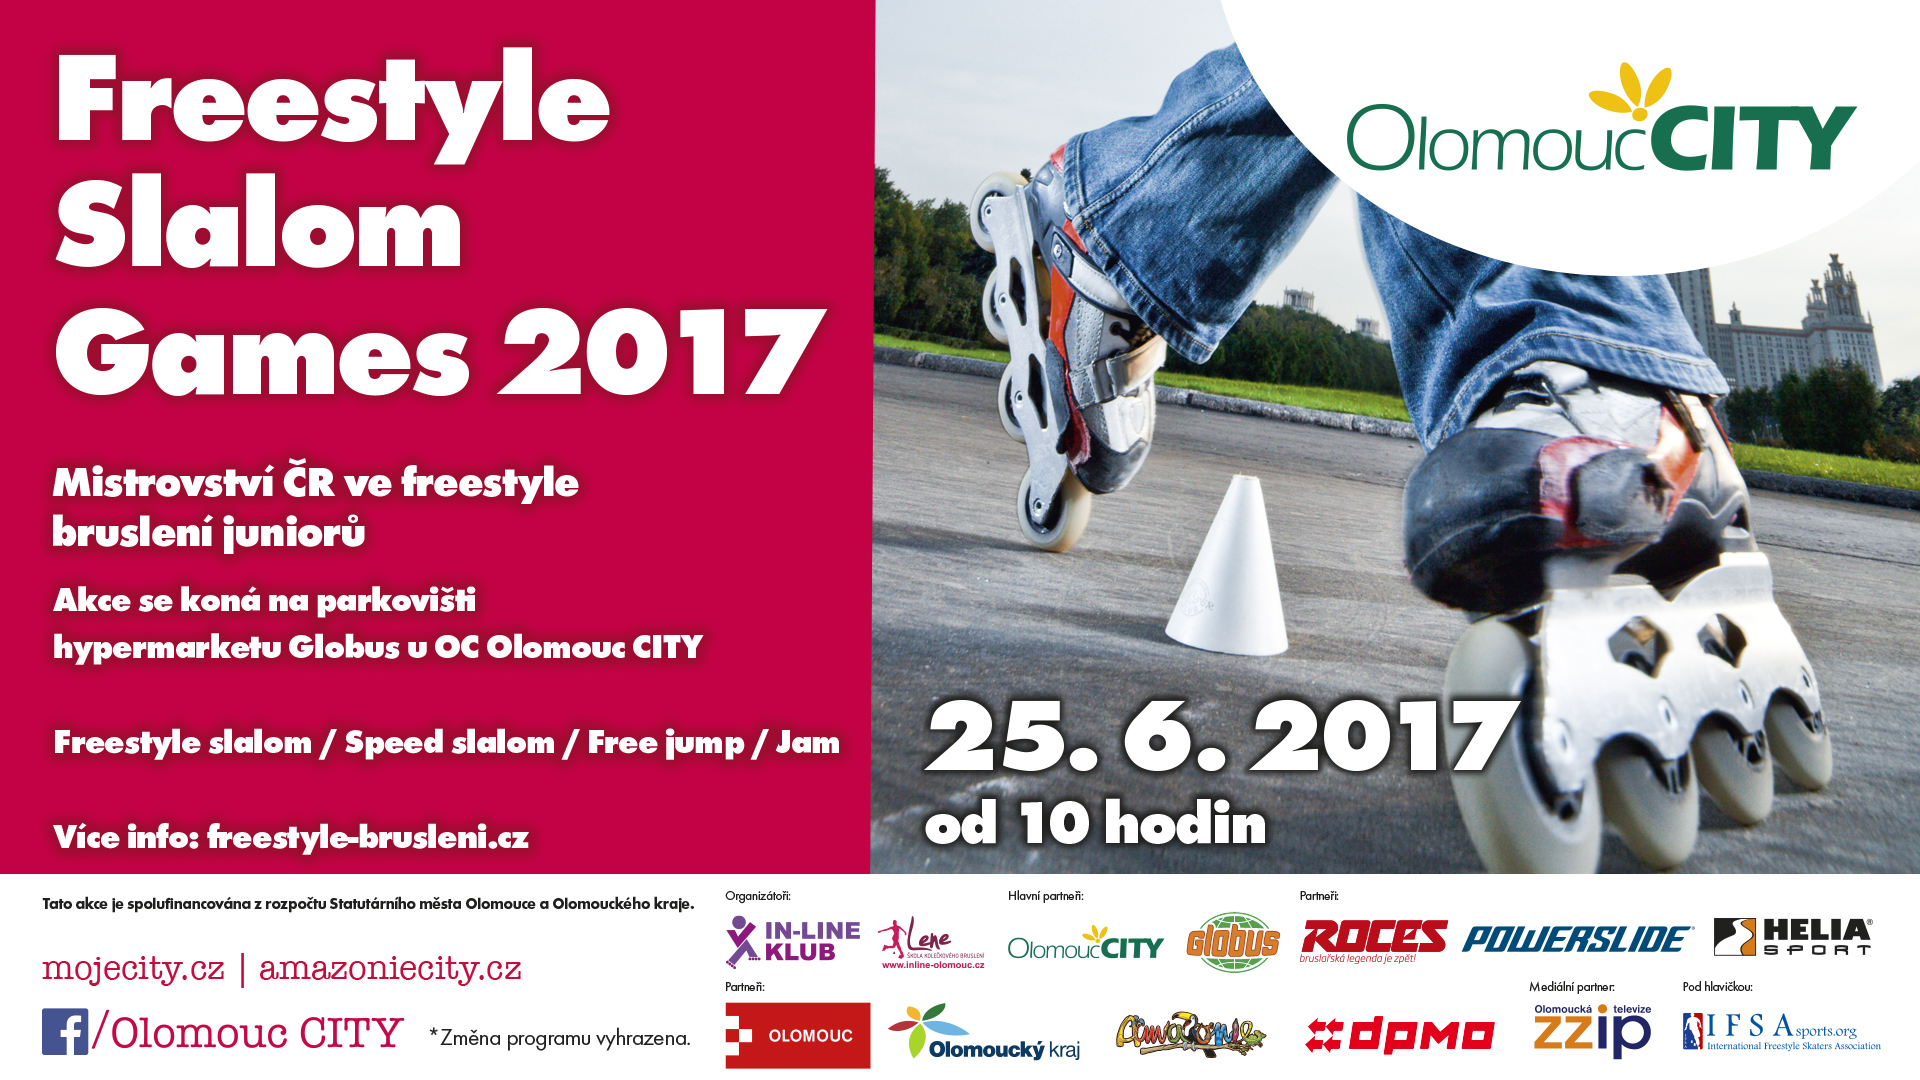 Freestyle Slalom Games 2017